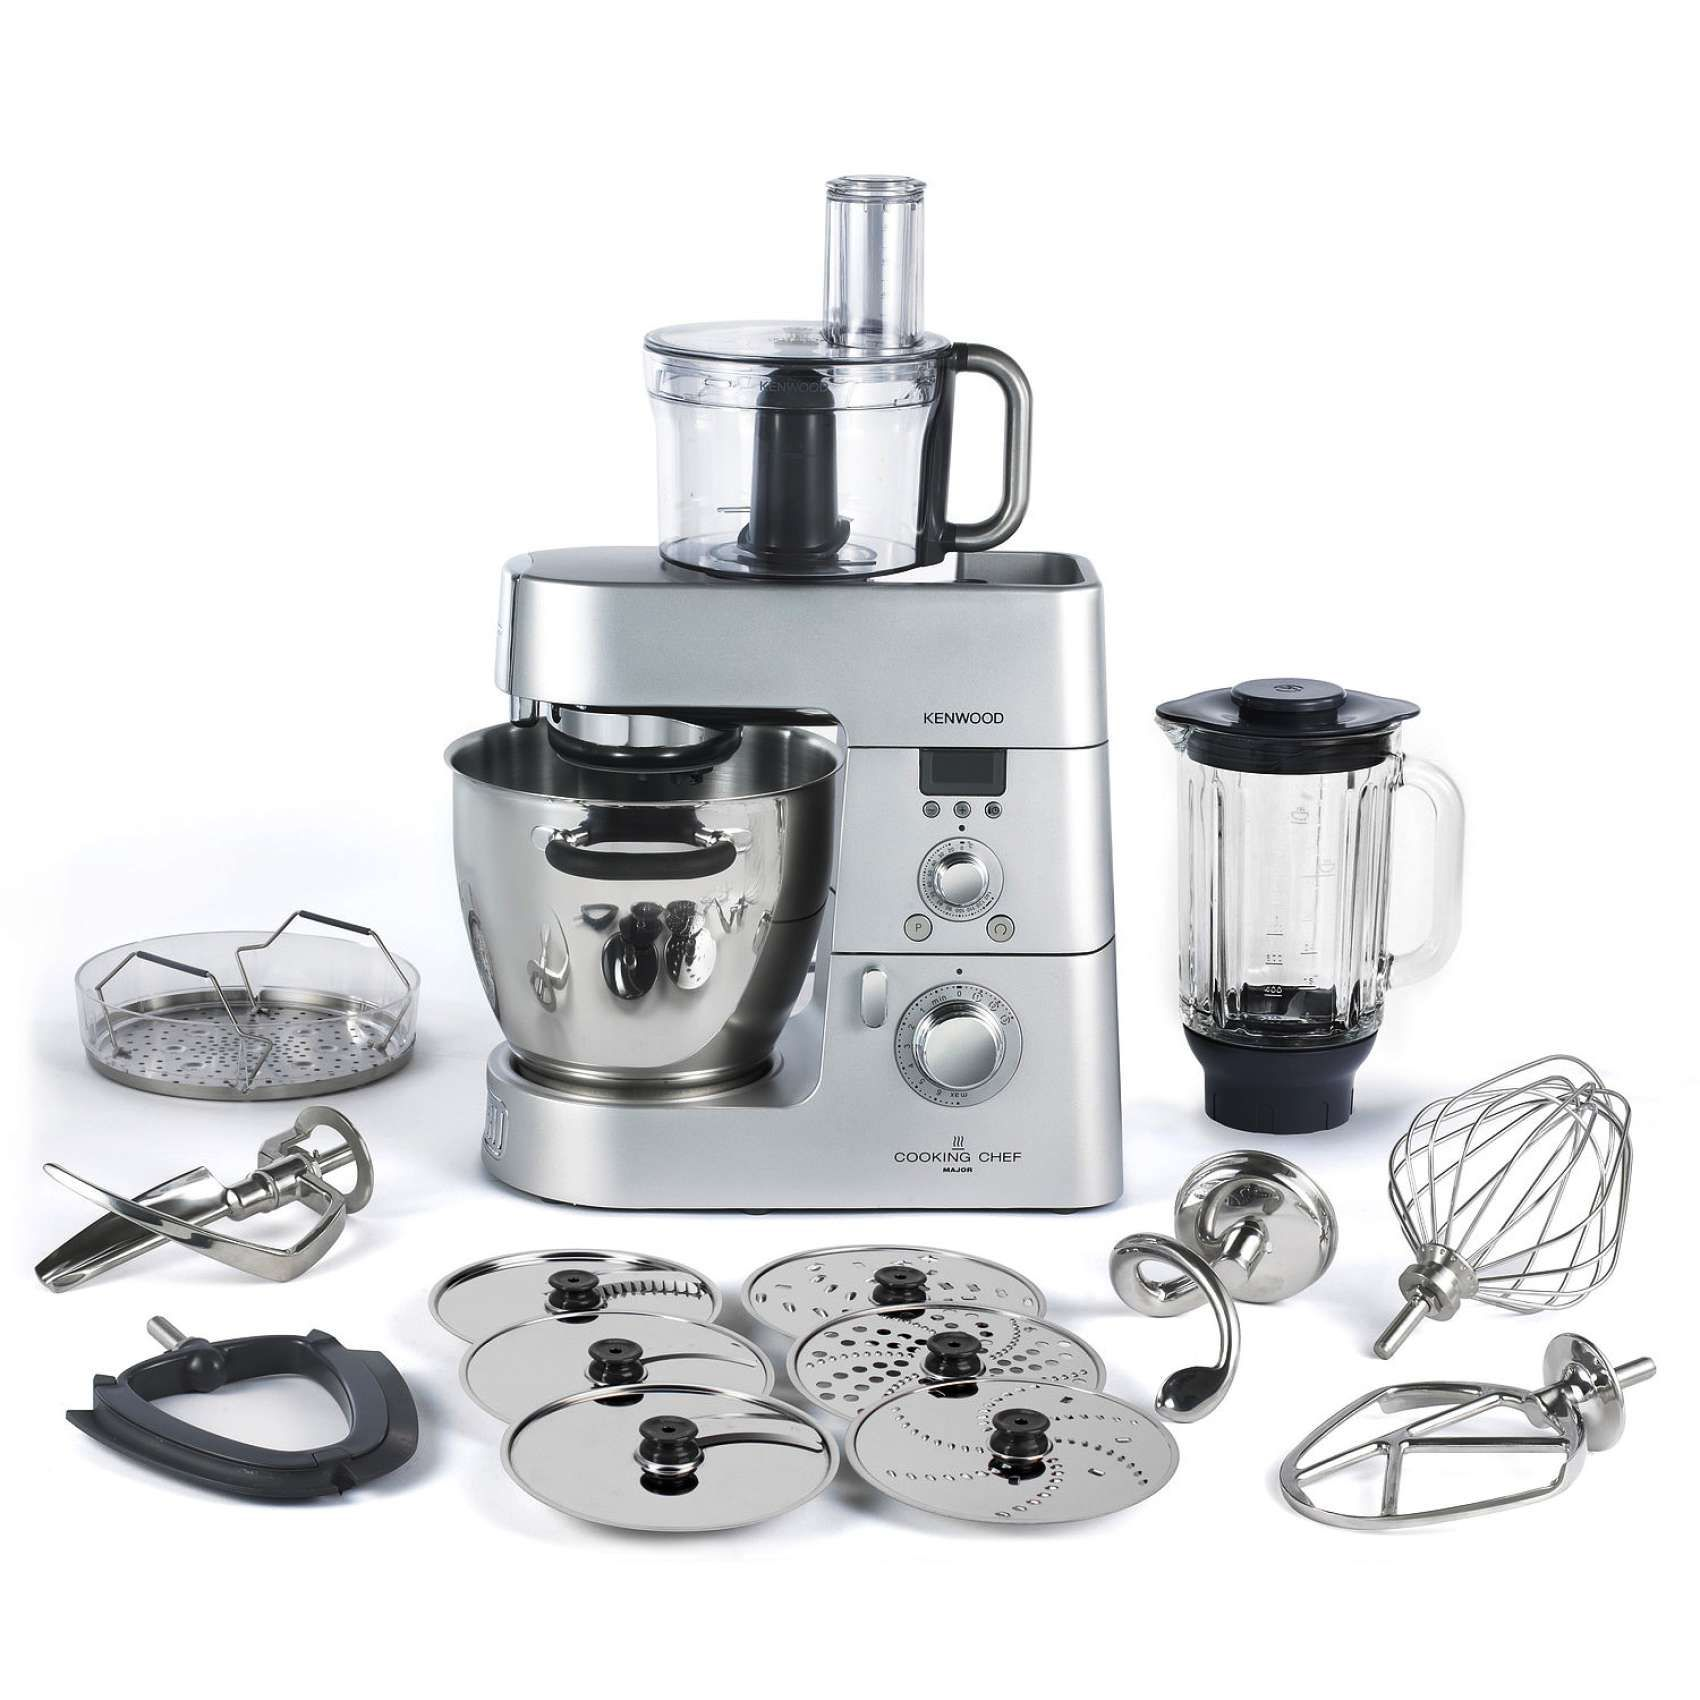 Kenwood Cooking Chef Induction Kitchen Machine Sur La Table Kenwood Cooking Chef Kitchen Machine Cooking Chef